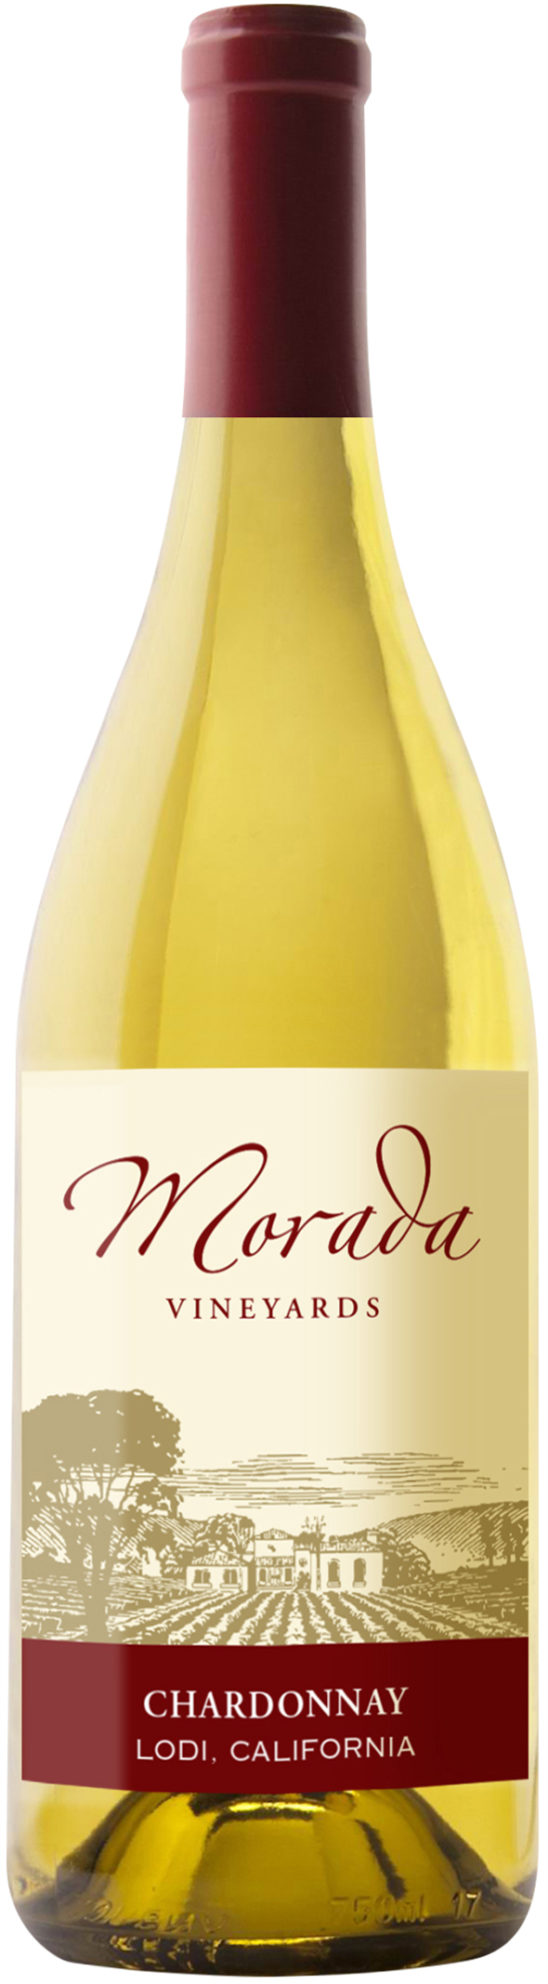 Morada Vineyards Chardonnay